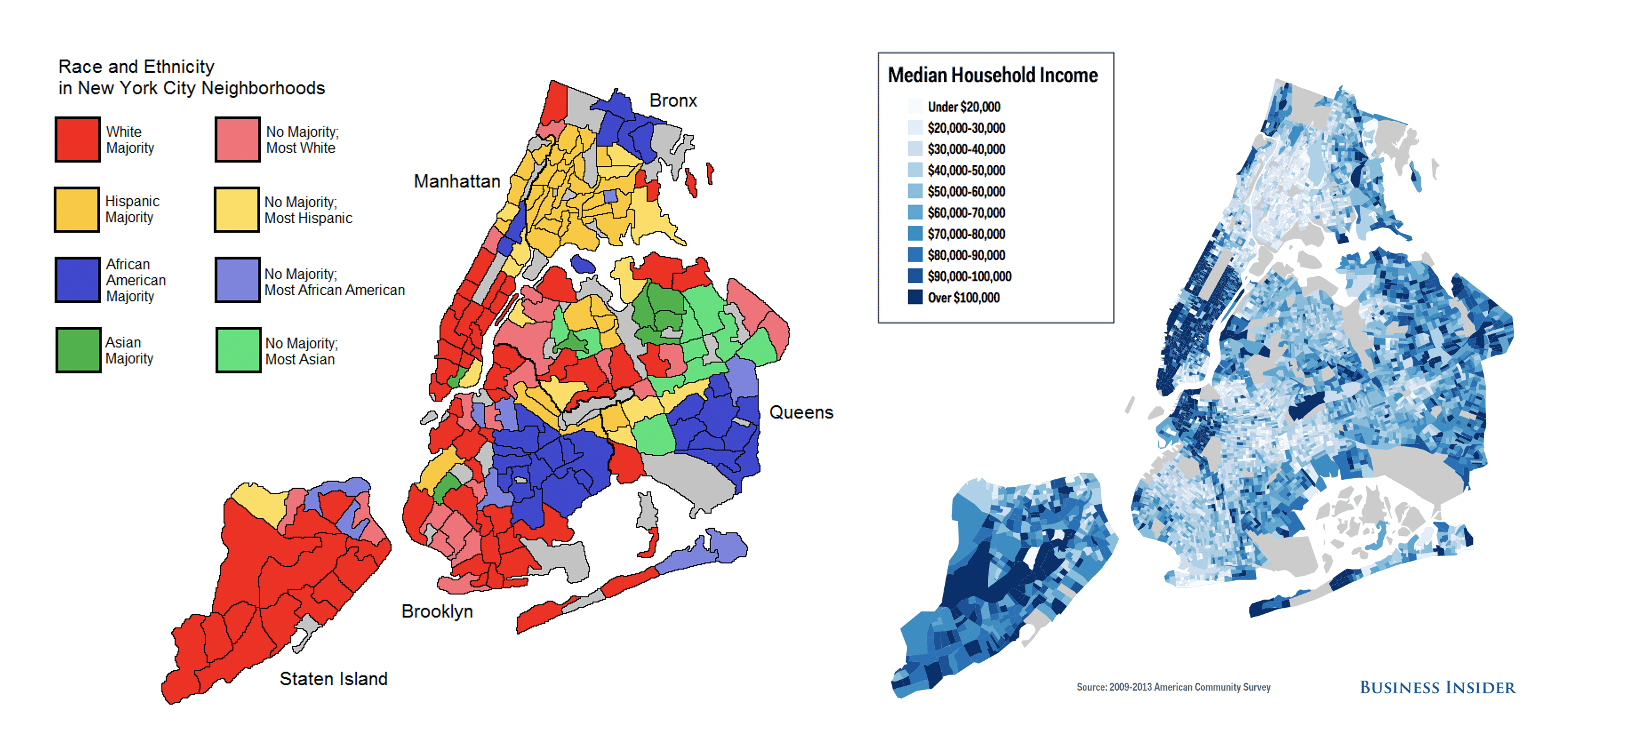 Maps illustrating race and ethnicity vs. median household income in New York City